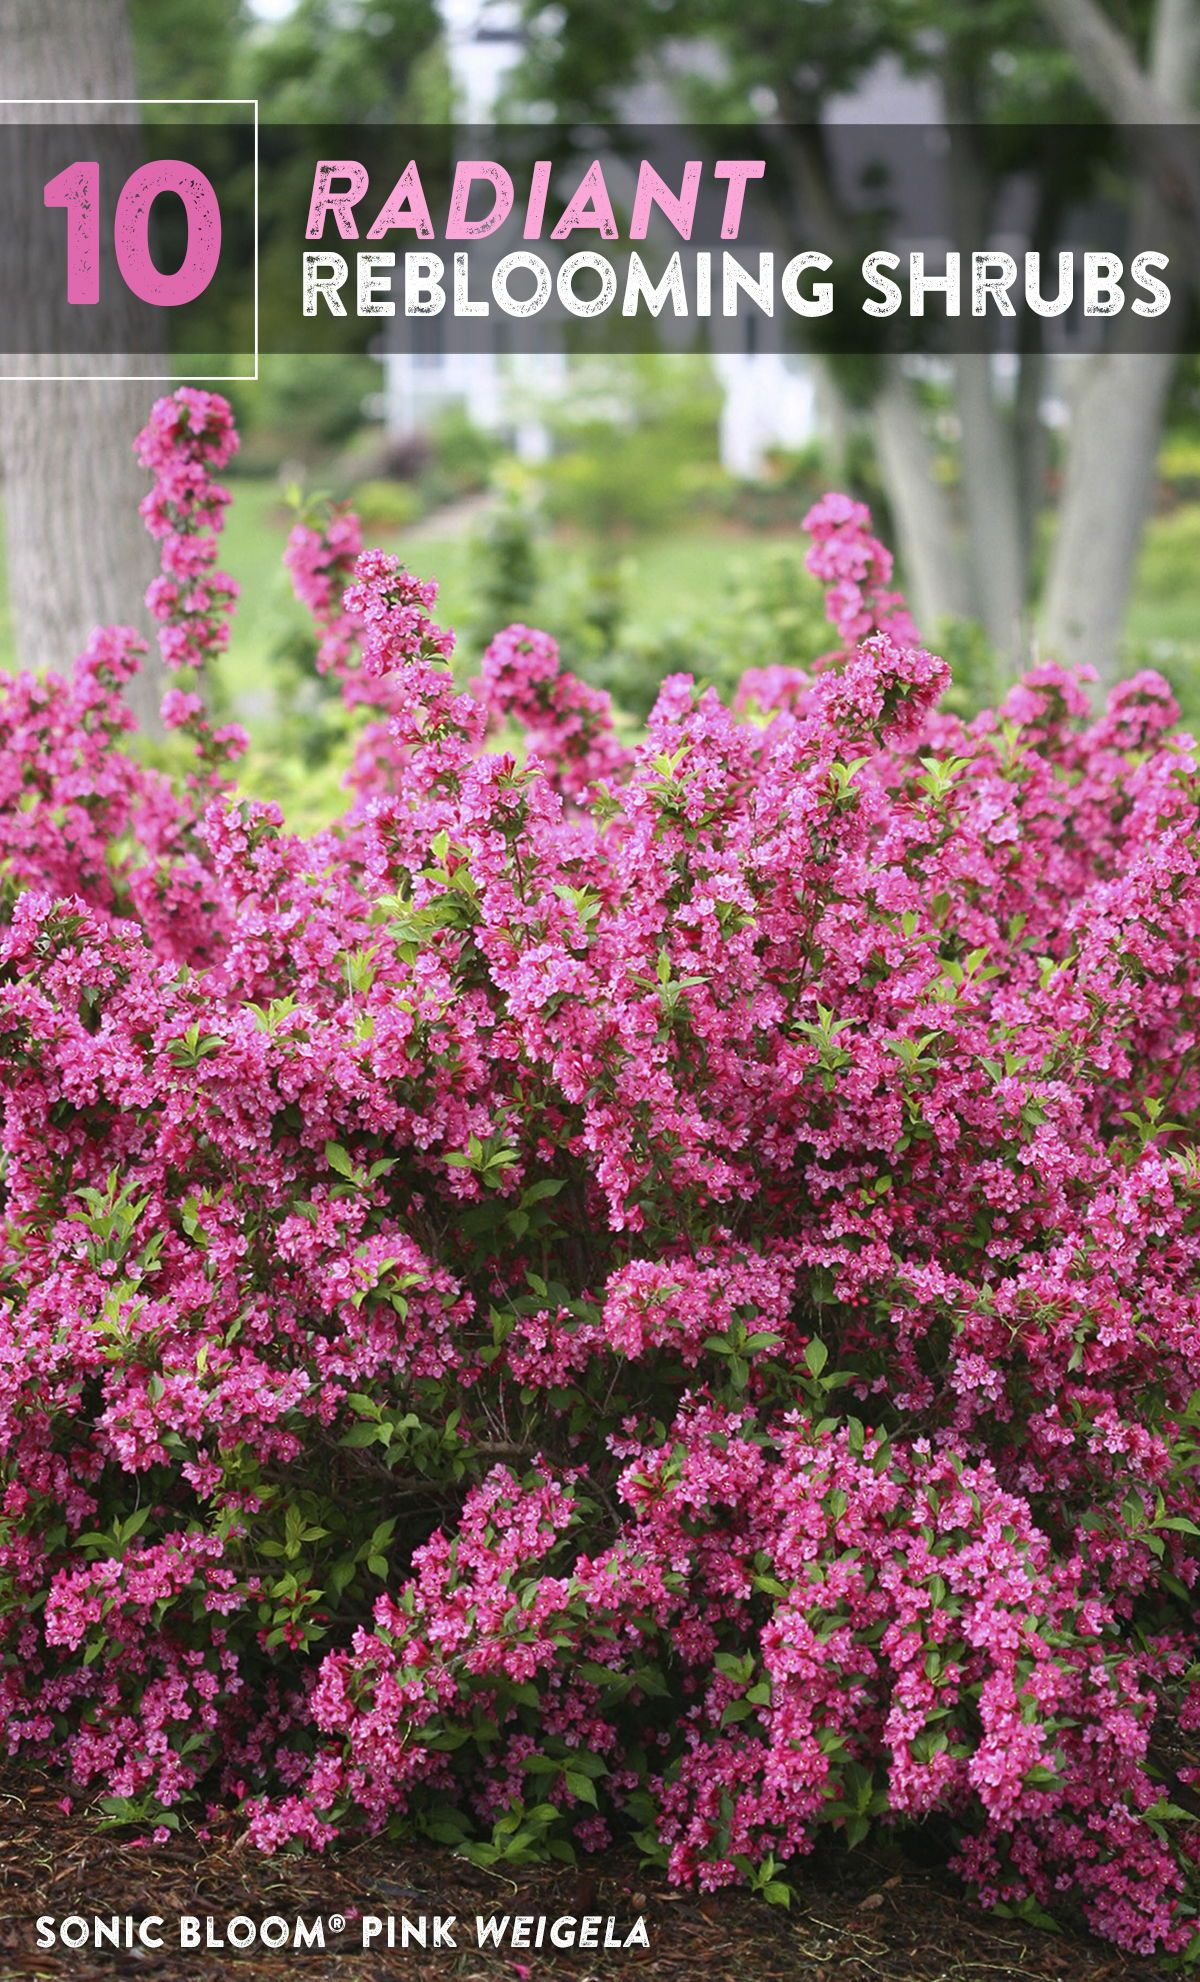 10 Radiant Reblooming Shrubs In 2020 Shrubs For Landscaping Landscaping Shrubs Hydrangea Landscaping